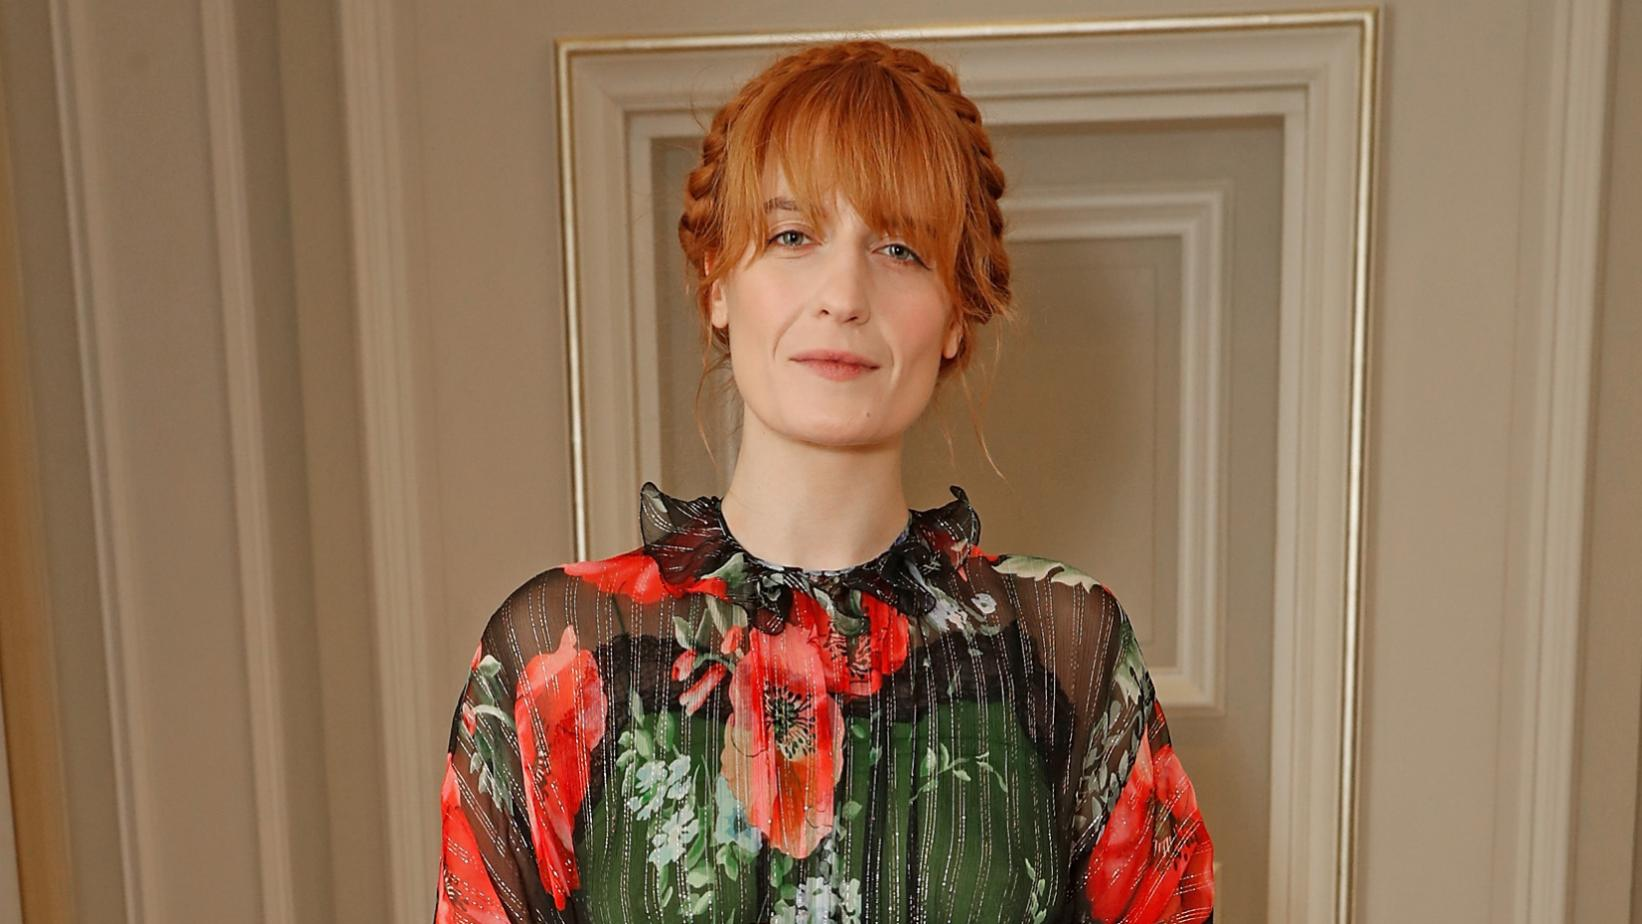 Florence Welch photographed in 2017